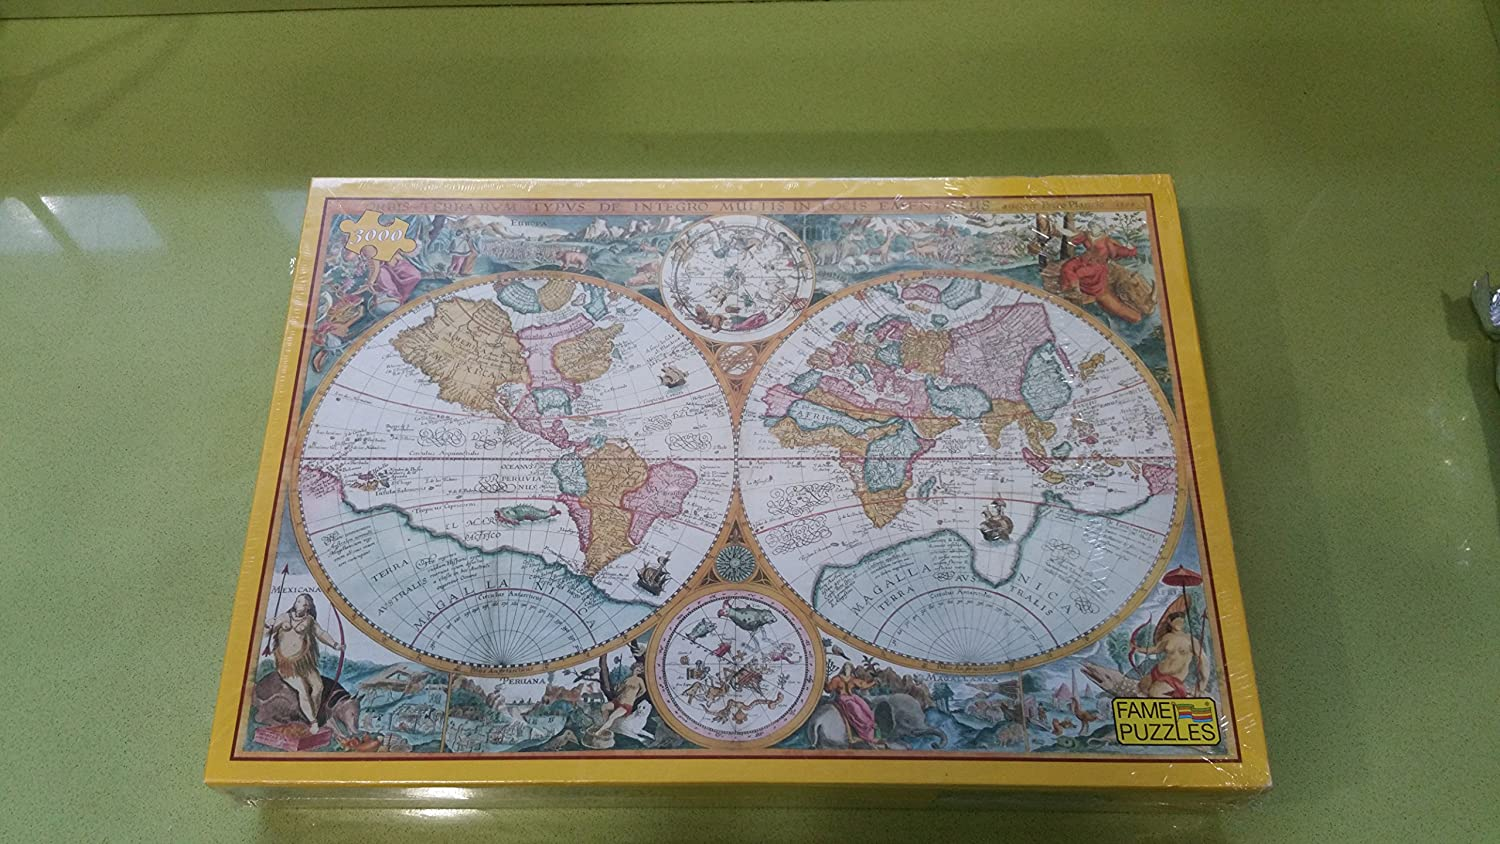 Historic Ancient World Map 1594 3000 Piece Jigsaw Puzzle By Fame Puzzle